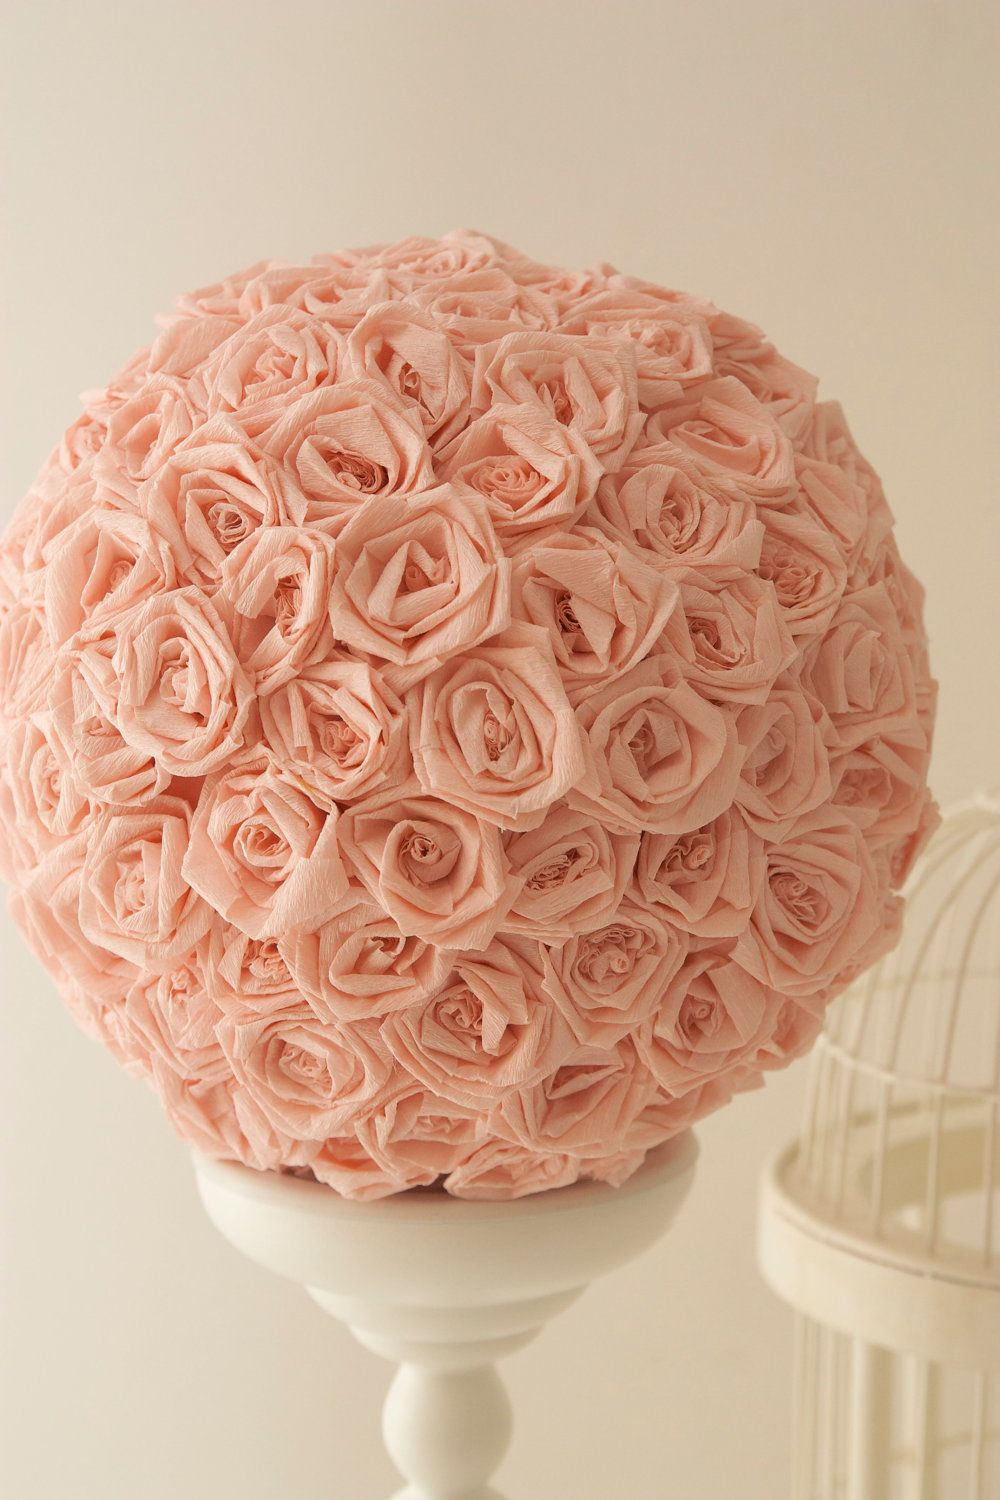 Handmade crepe paper rose pomander ball crepe paper centerpieces handmade crepe paper rose pomander ball mightylinksfo Choice Image